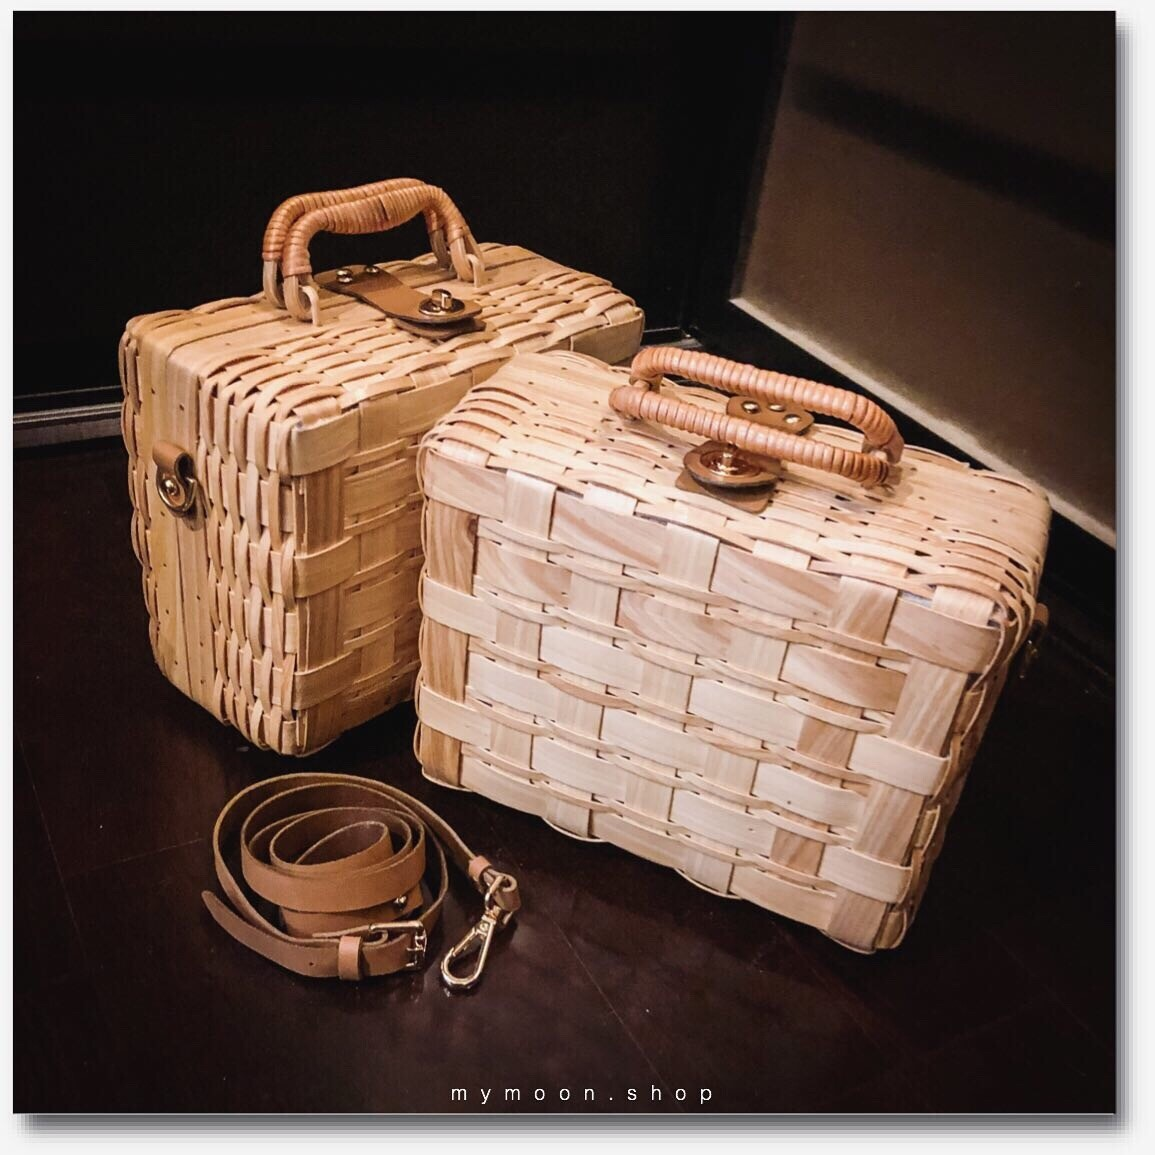 Bamboo woven Suitcase Small size 24cm handle and genuine leather shoulder strap